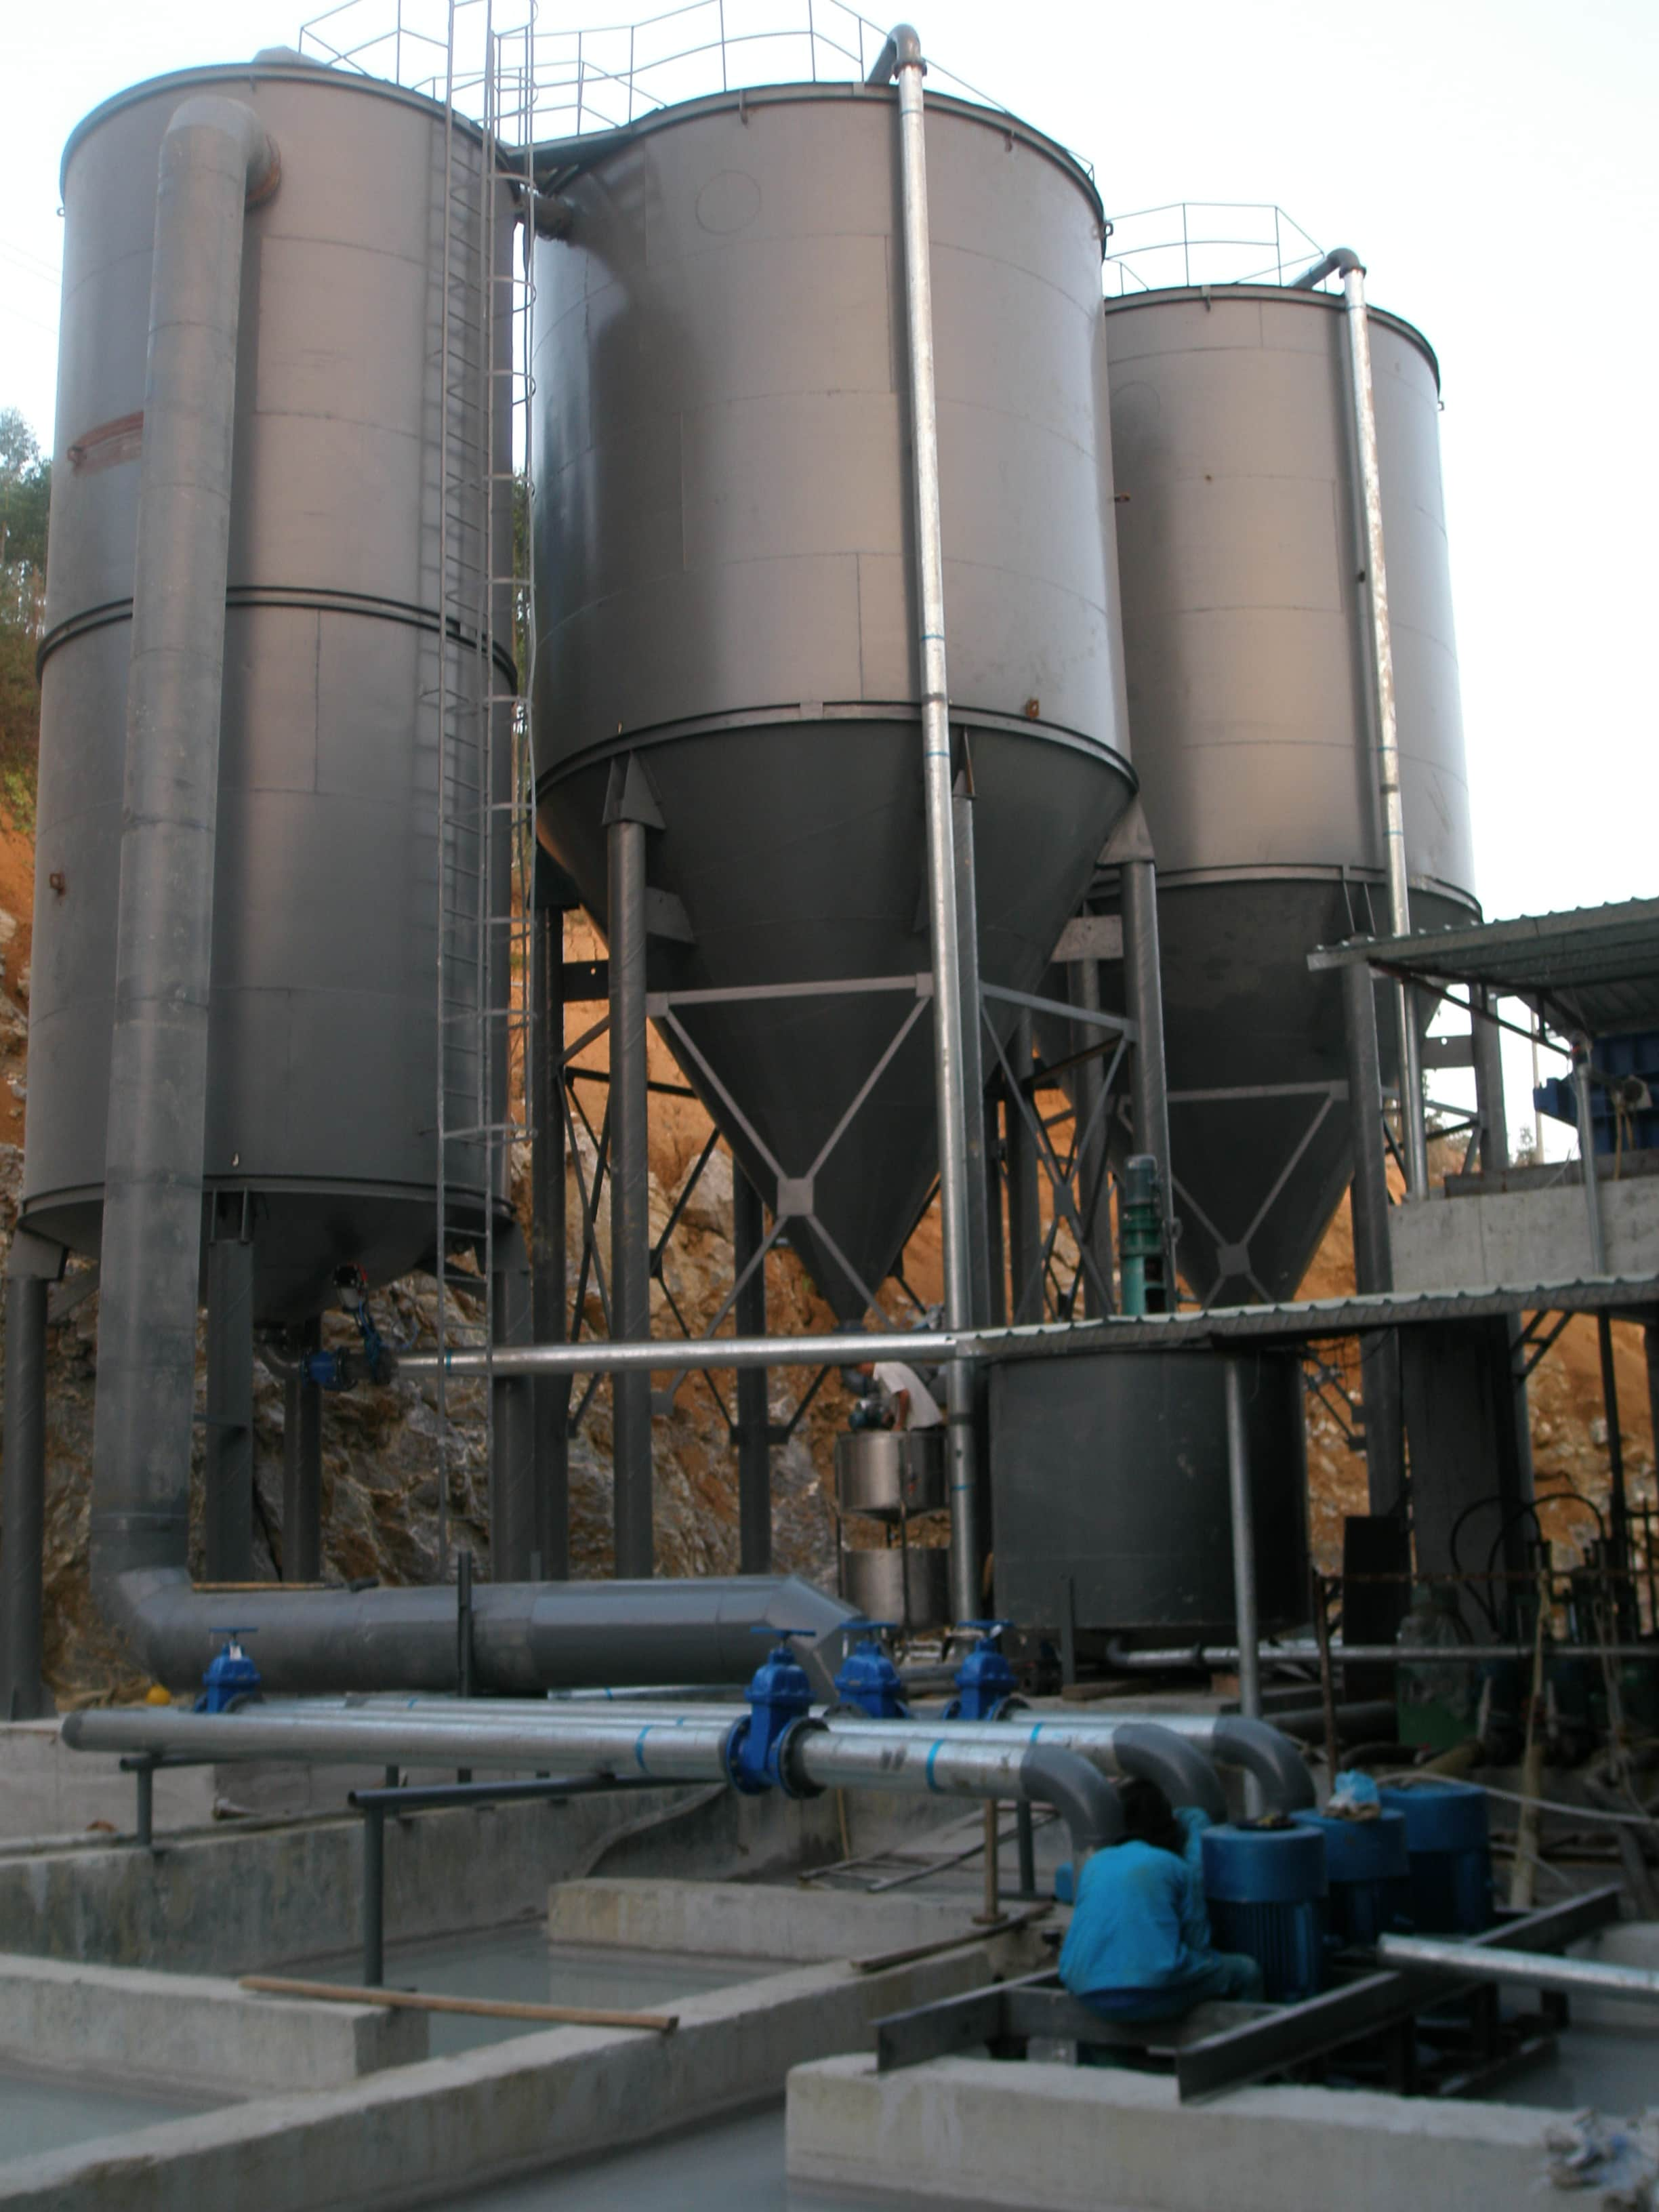 10000 L/M Wastewater Treatment System for a Marble Plant